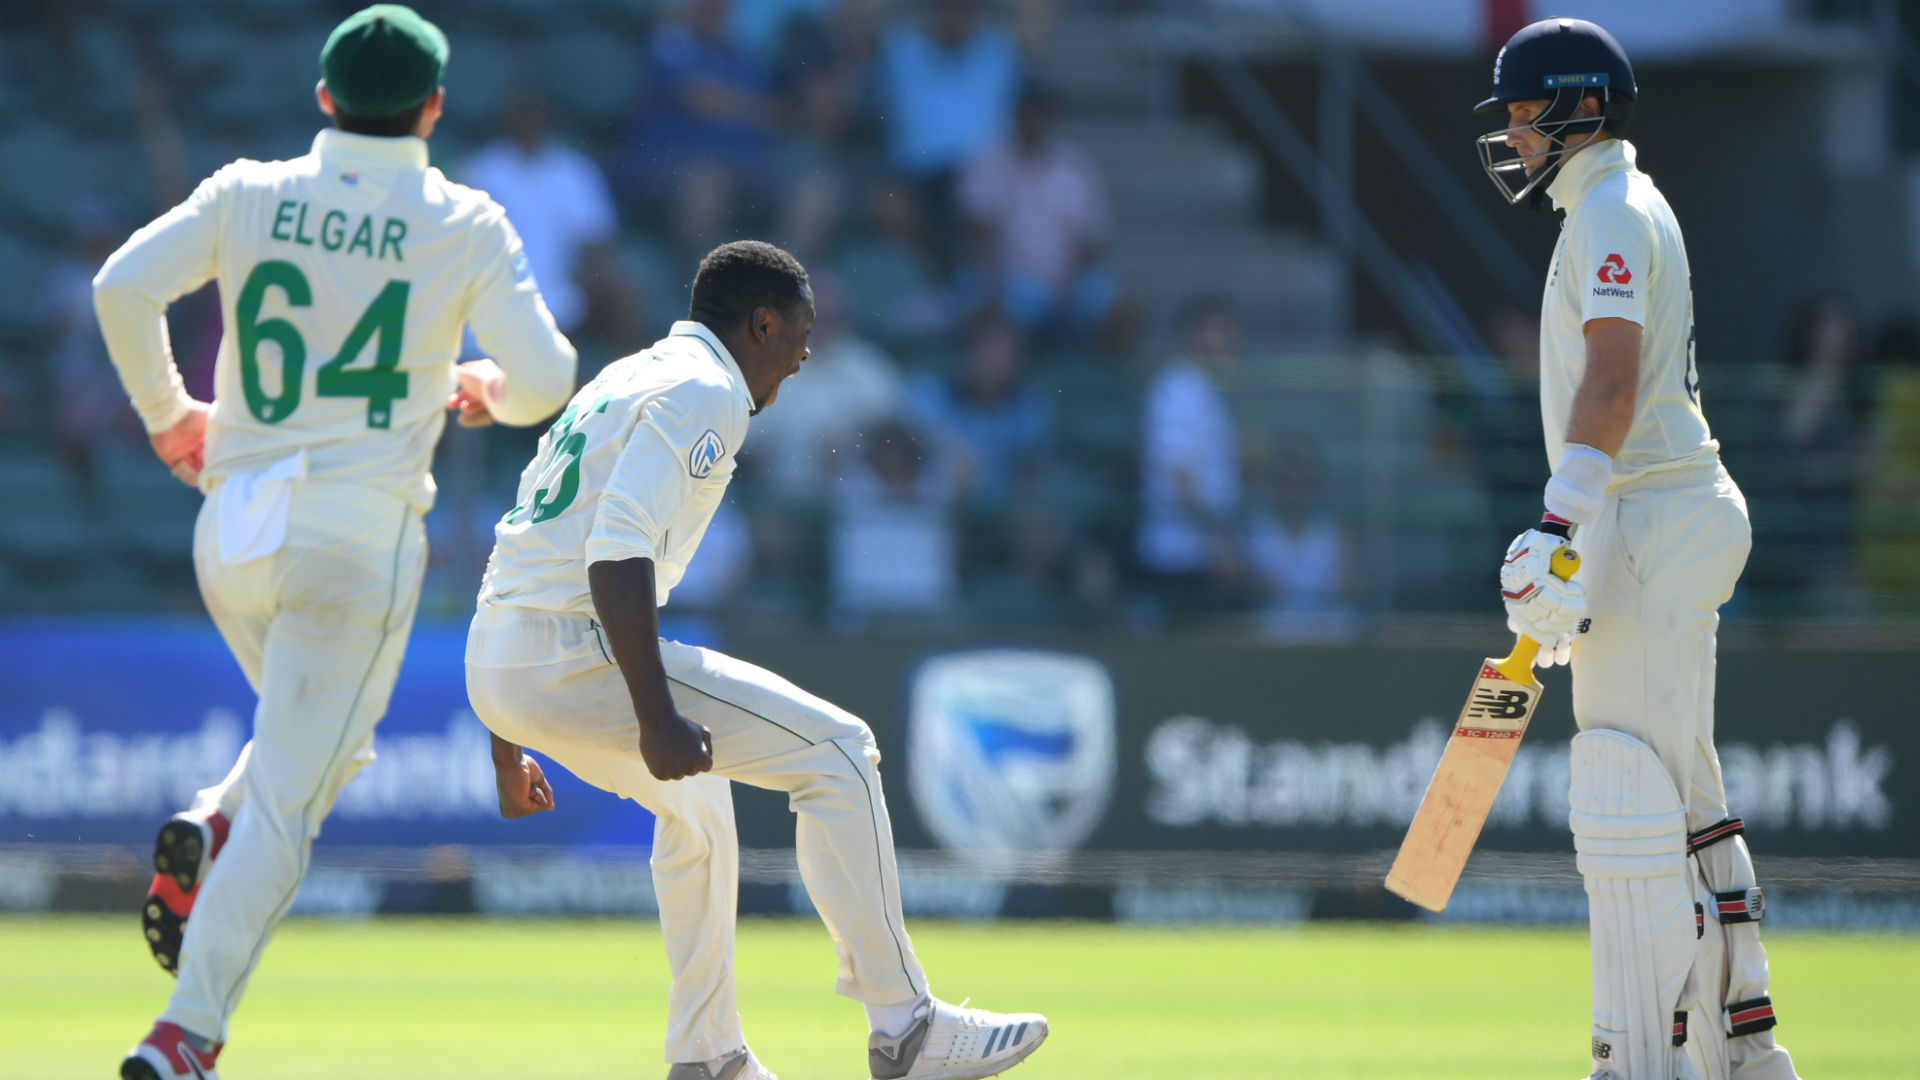 South Africa seamer Rabada to miss fourth England Test after Root celebration